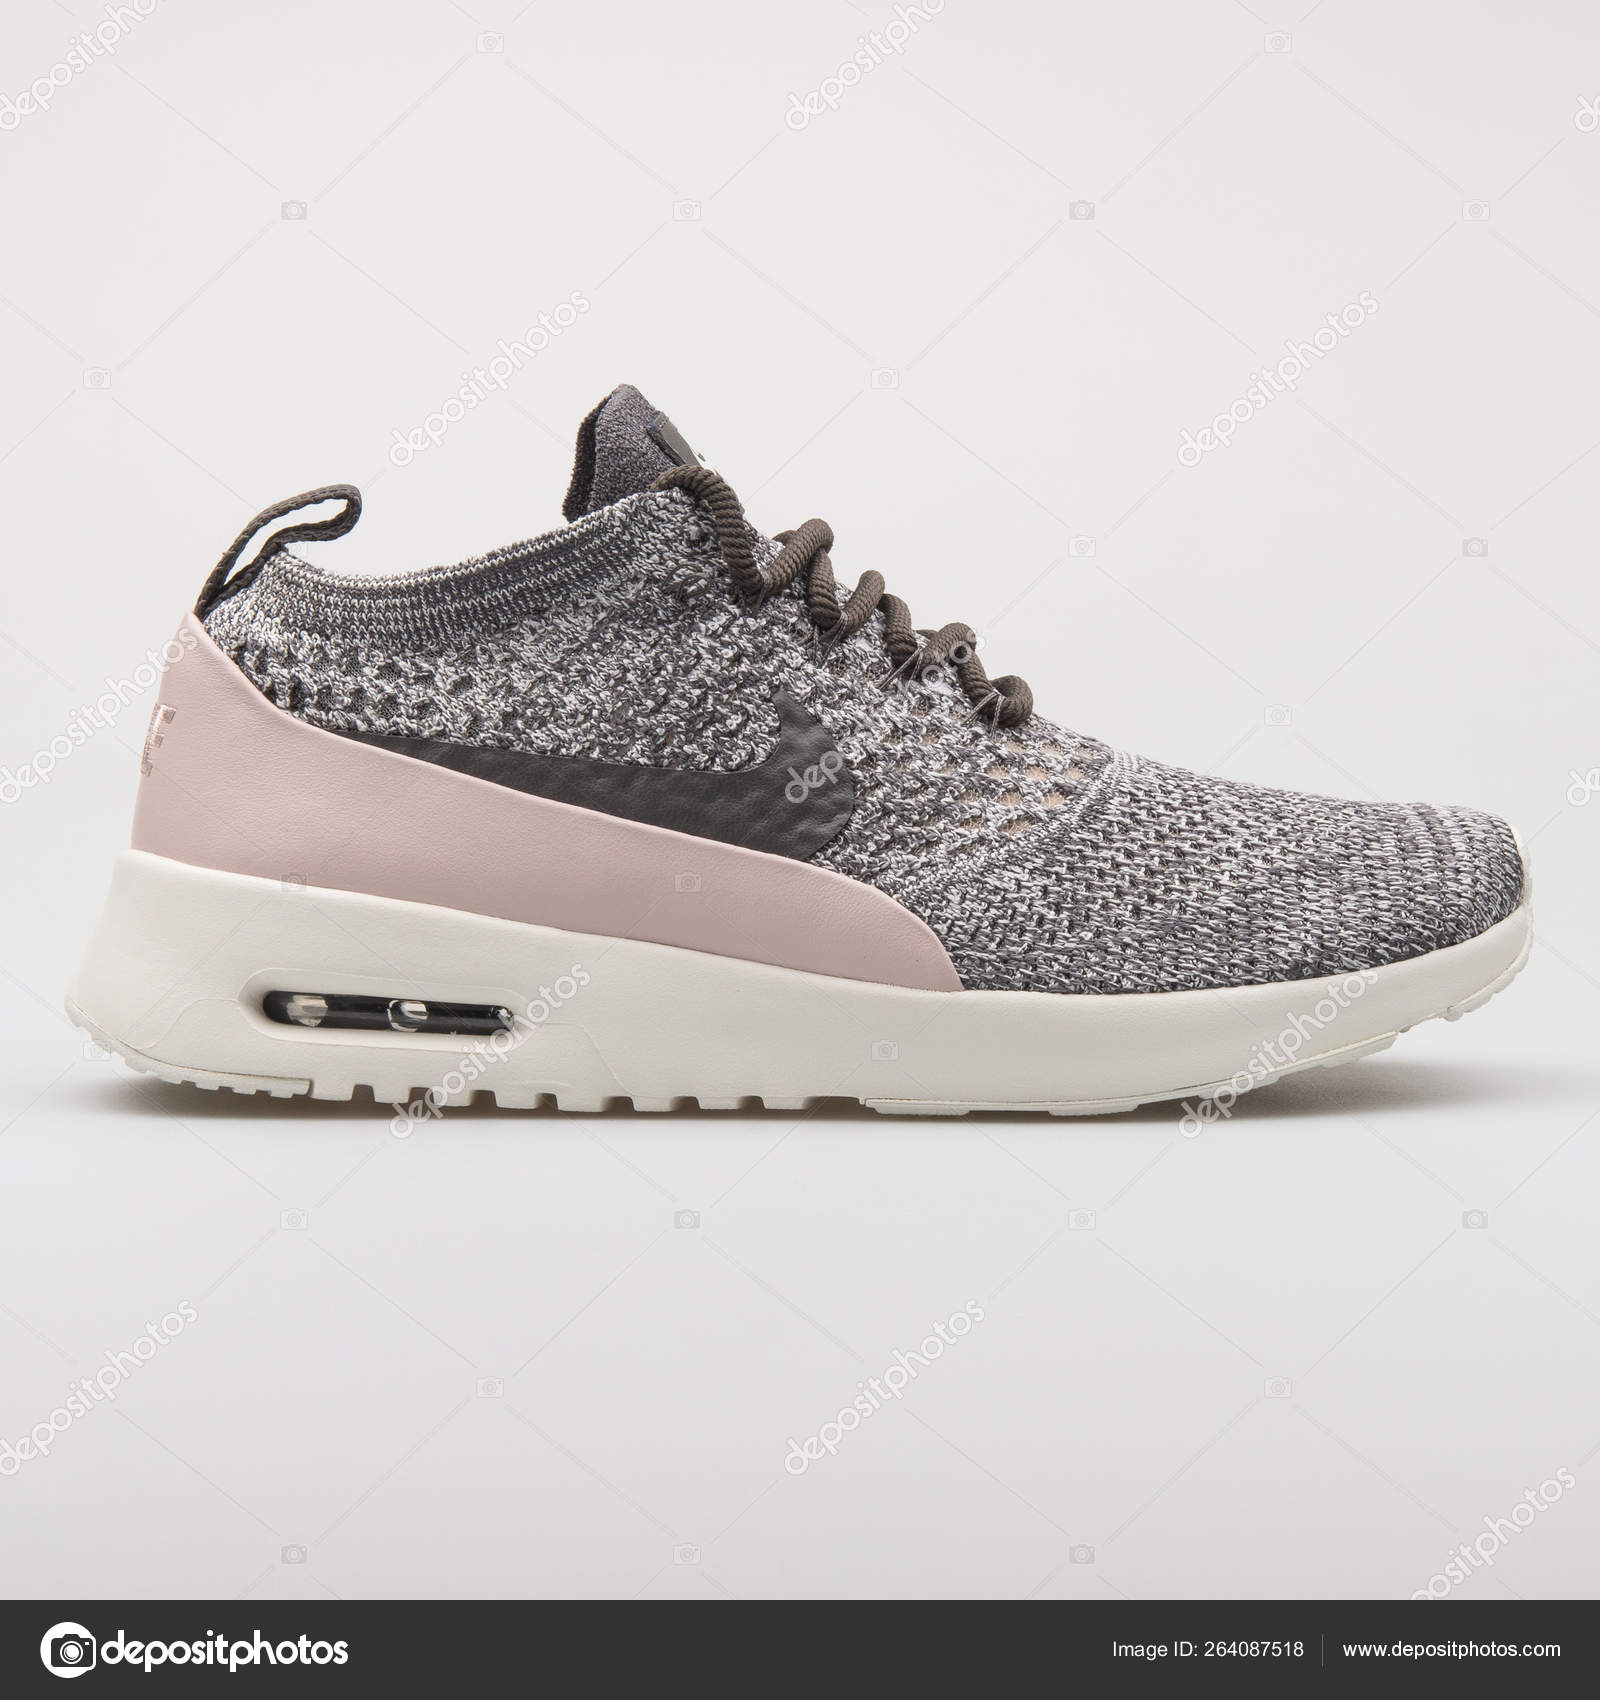 egipcio Celda de poder Arrestar  Nike Air Max Thea Ultra Flyknit grey and pink sneaker – Stock Editorial  Photo © xMarshallfilms #264087518